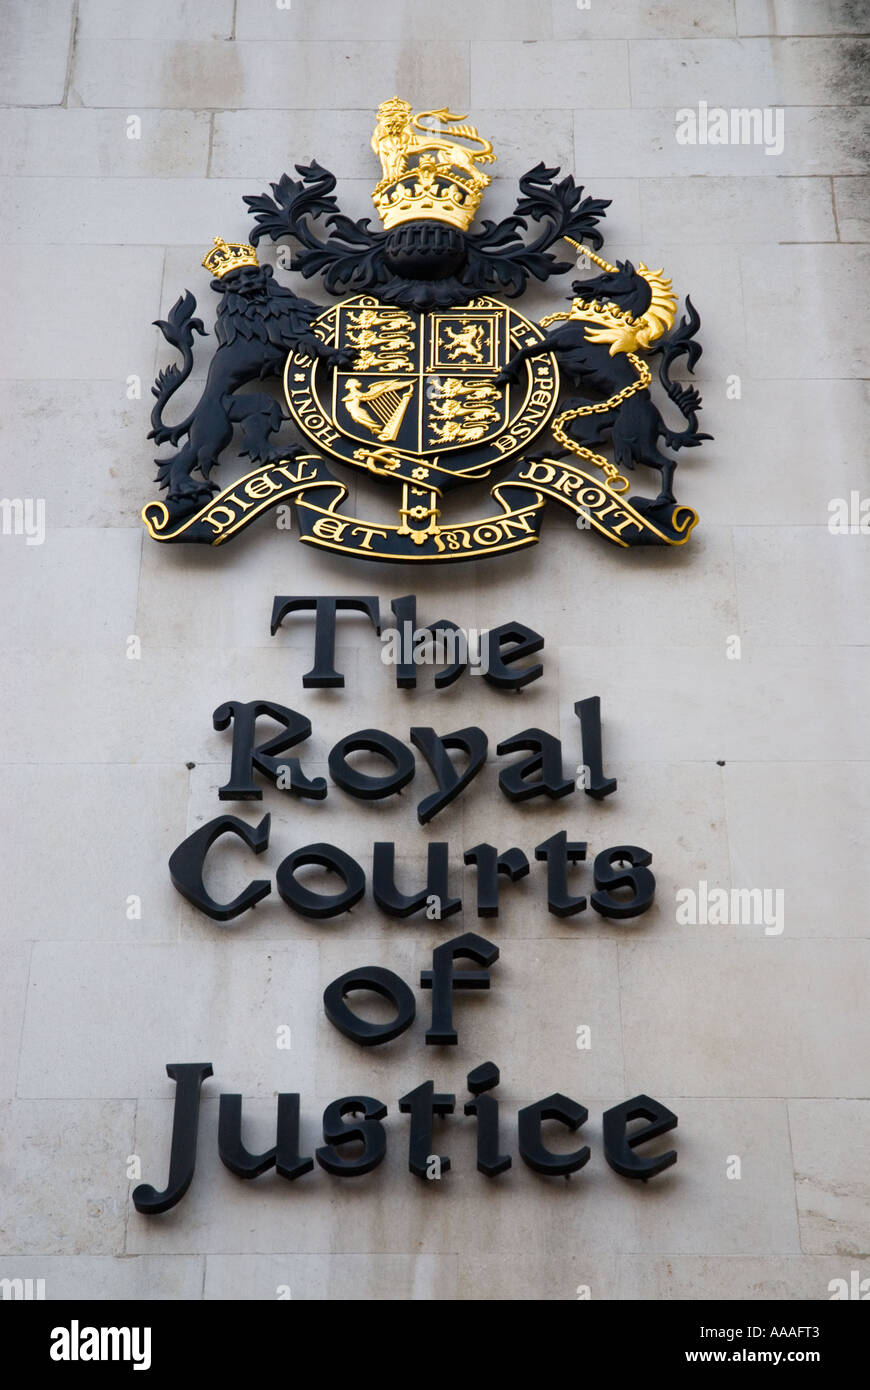 The Royal Courts of Justice coat of arms in London - Stock Image